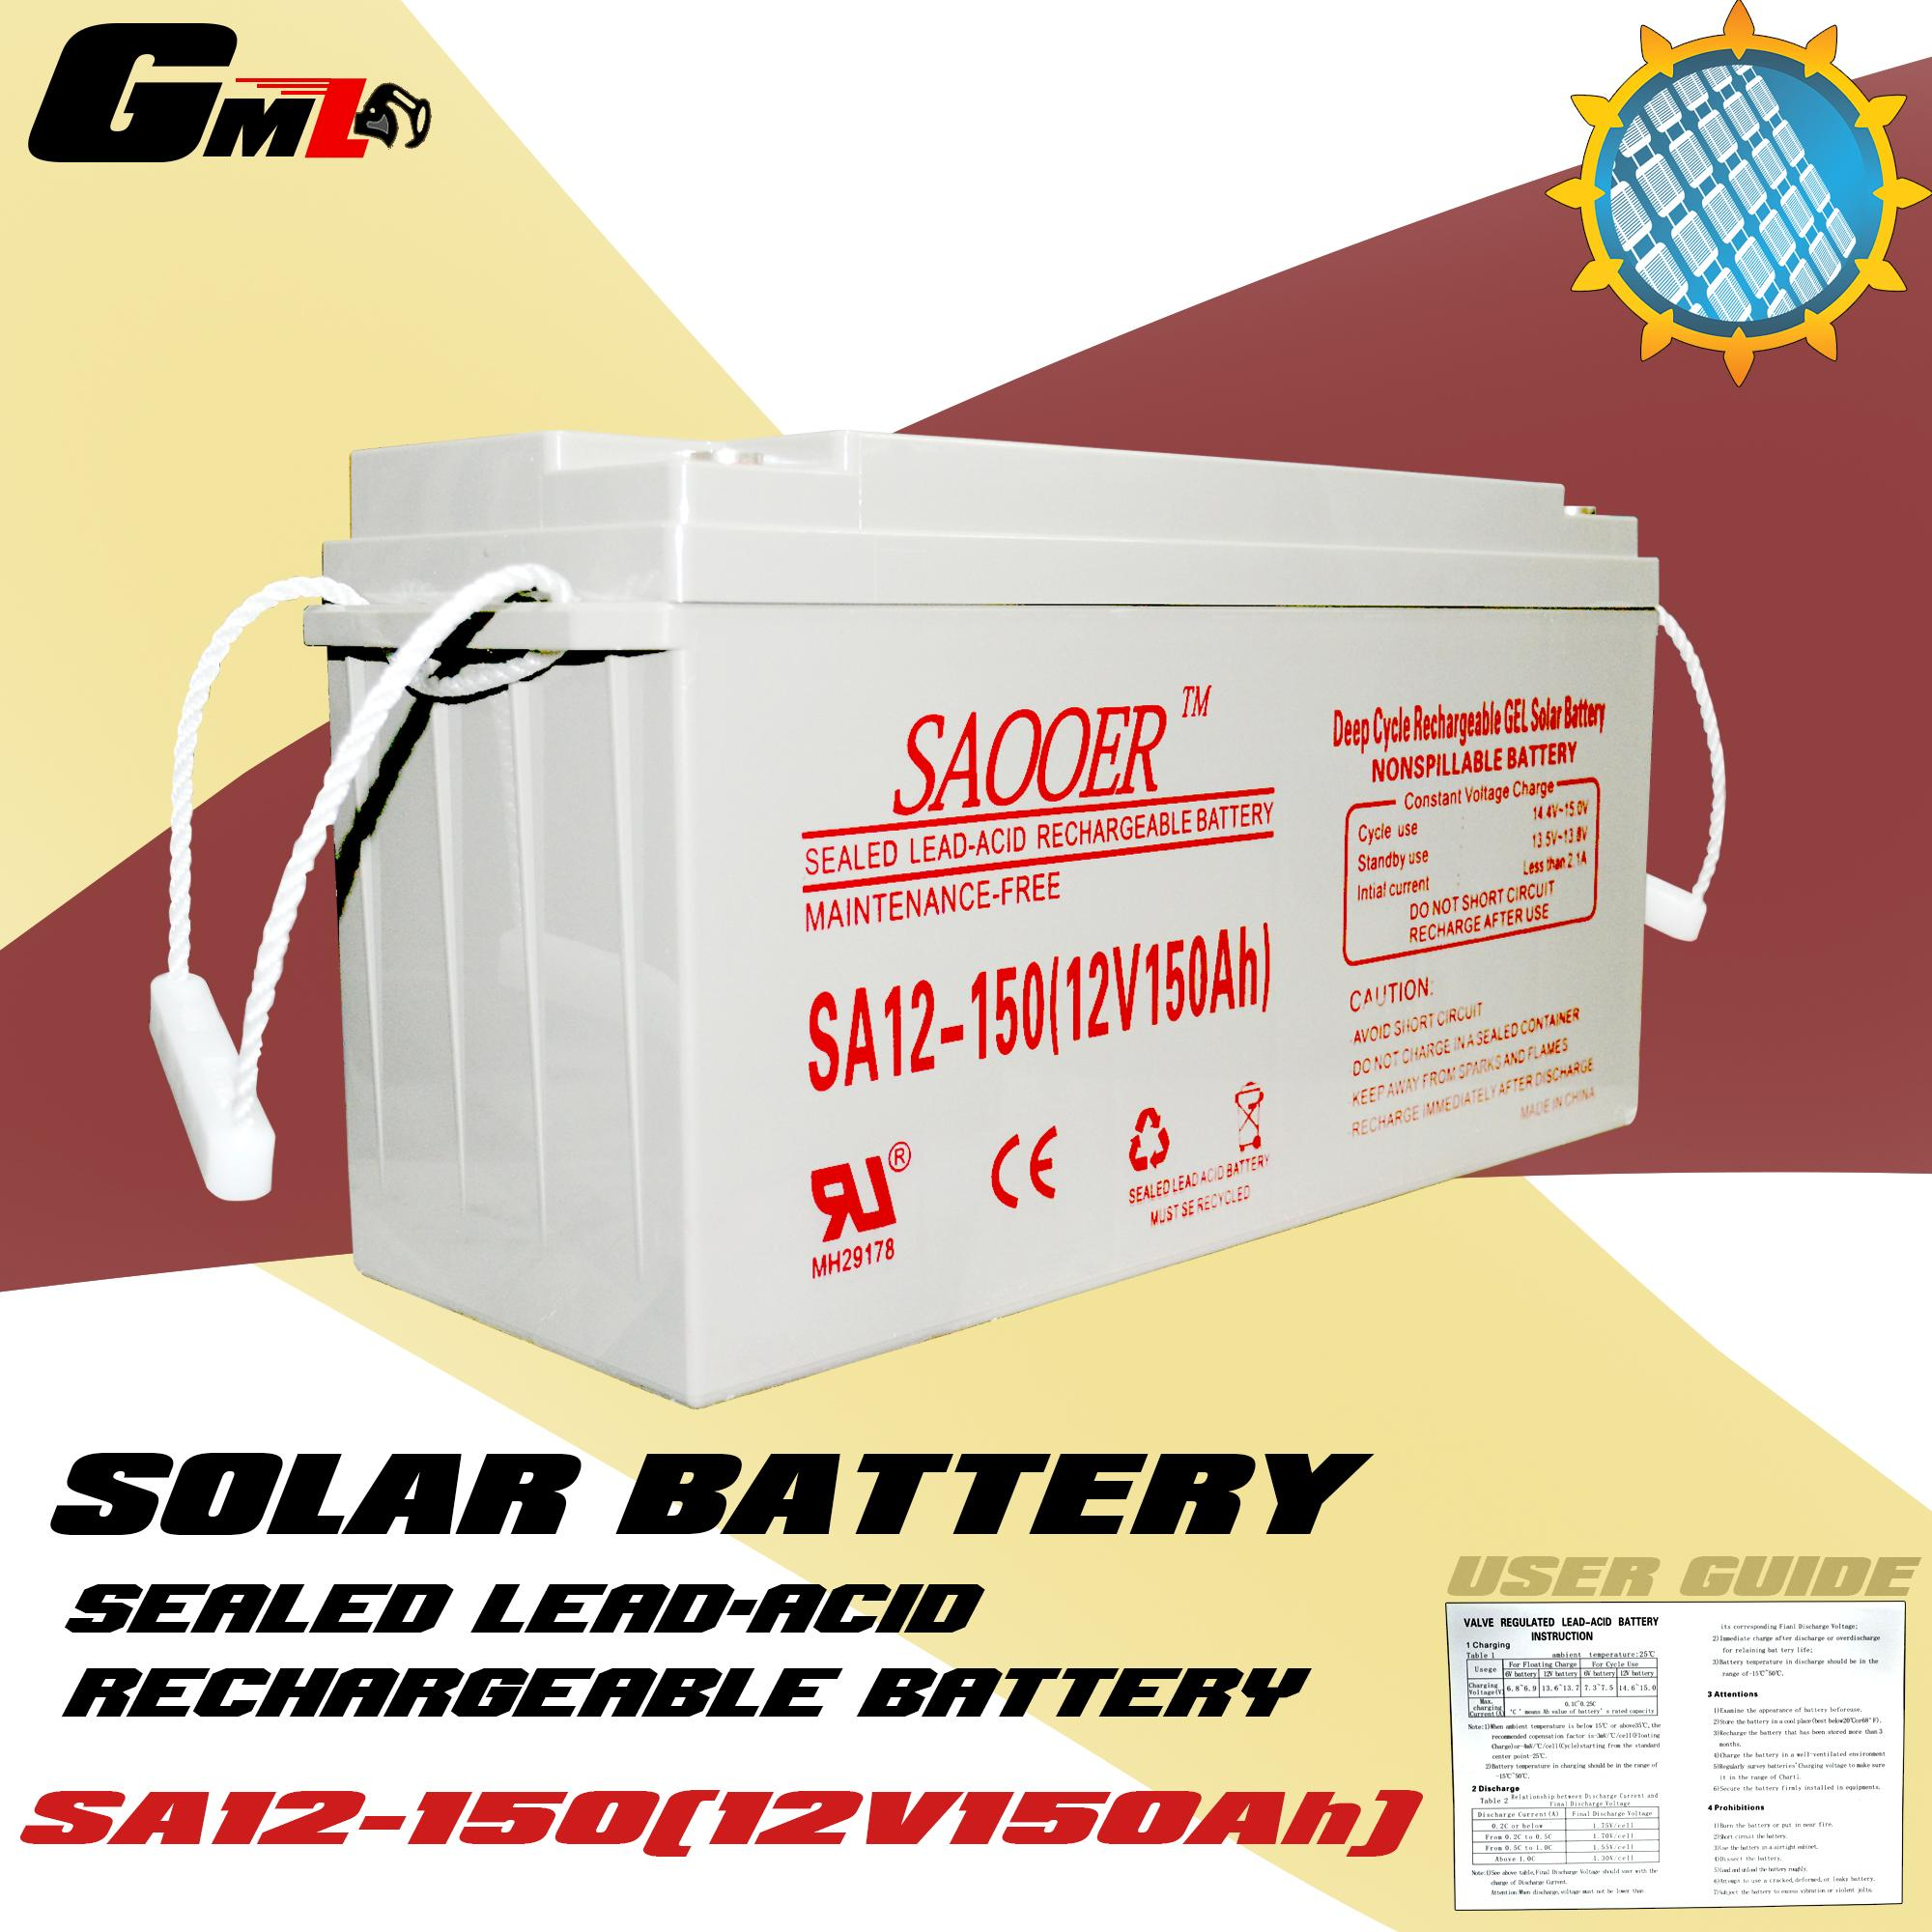 Solar Philippines Price List Led Light Set For Sale Lazada Details About Lighting Control Voice Activated 12v Switch Lamp New Sa12 15012v150ah Saooer Sealed Lead Acid Rechargeable Battery